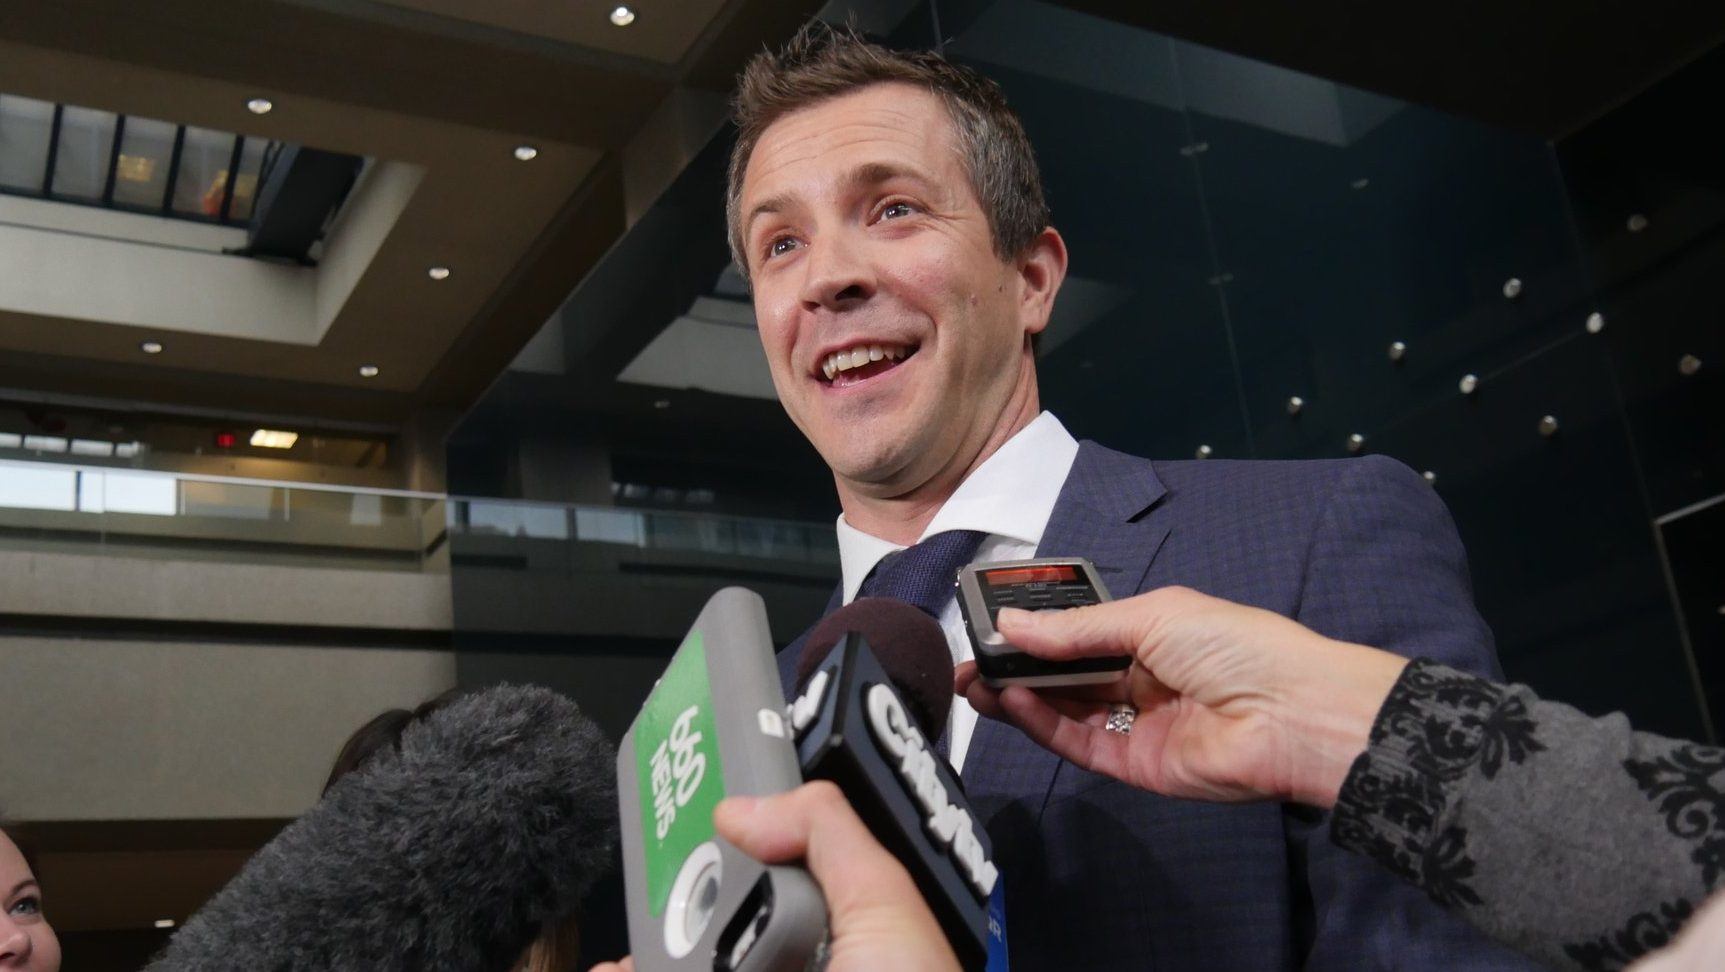 Concerns about third-party advertiser swirl around Calgary mayoral candidate